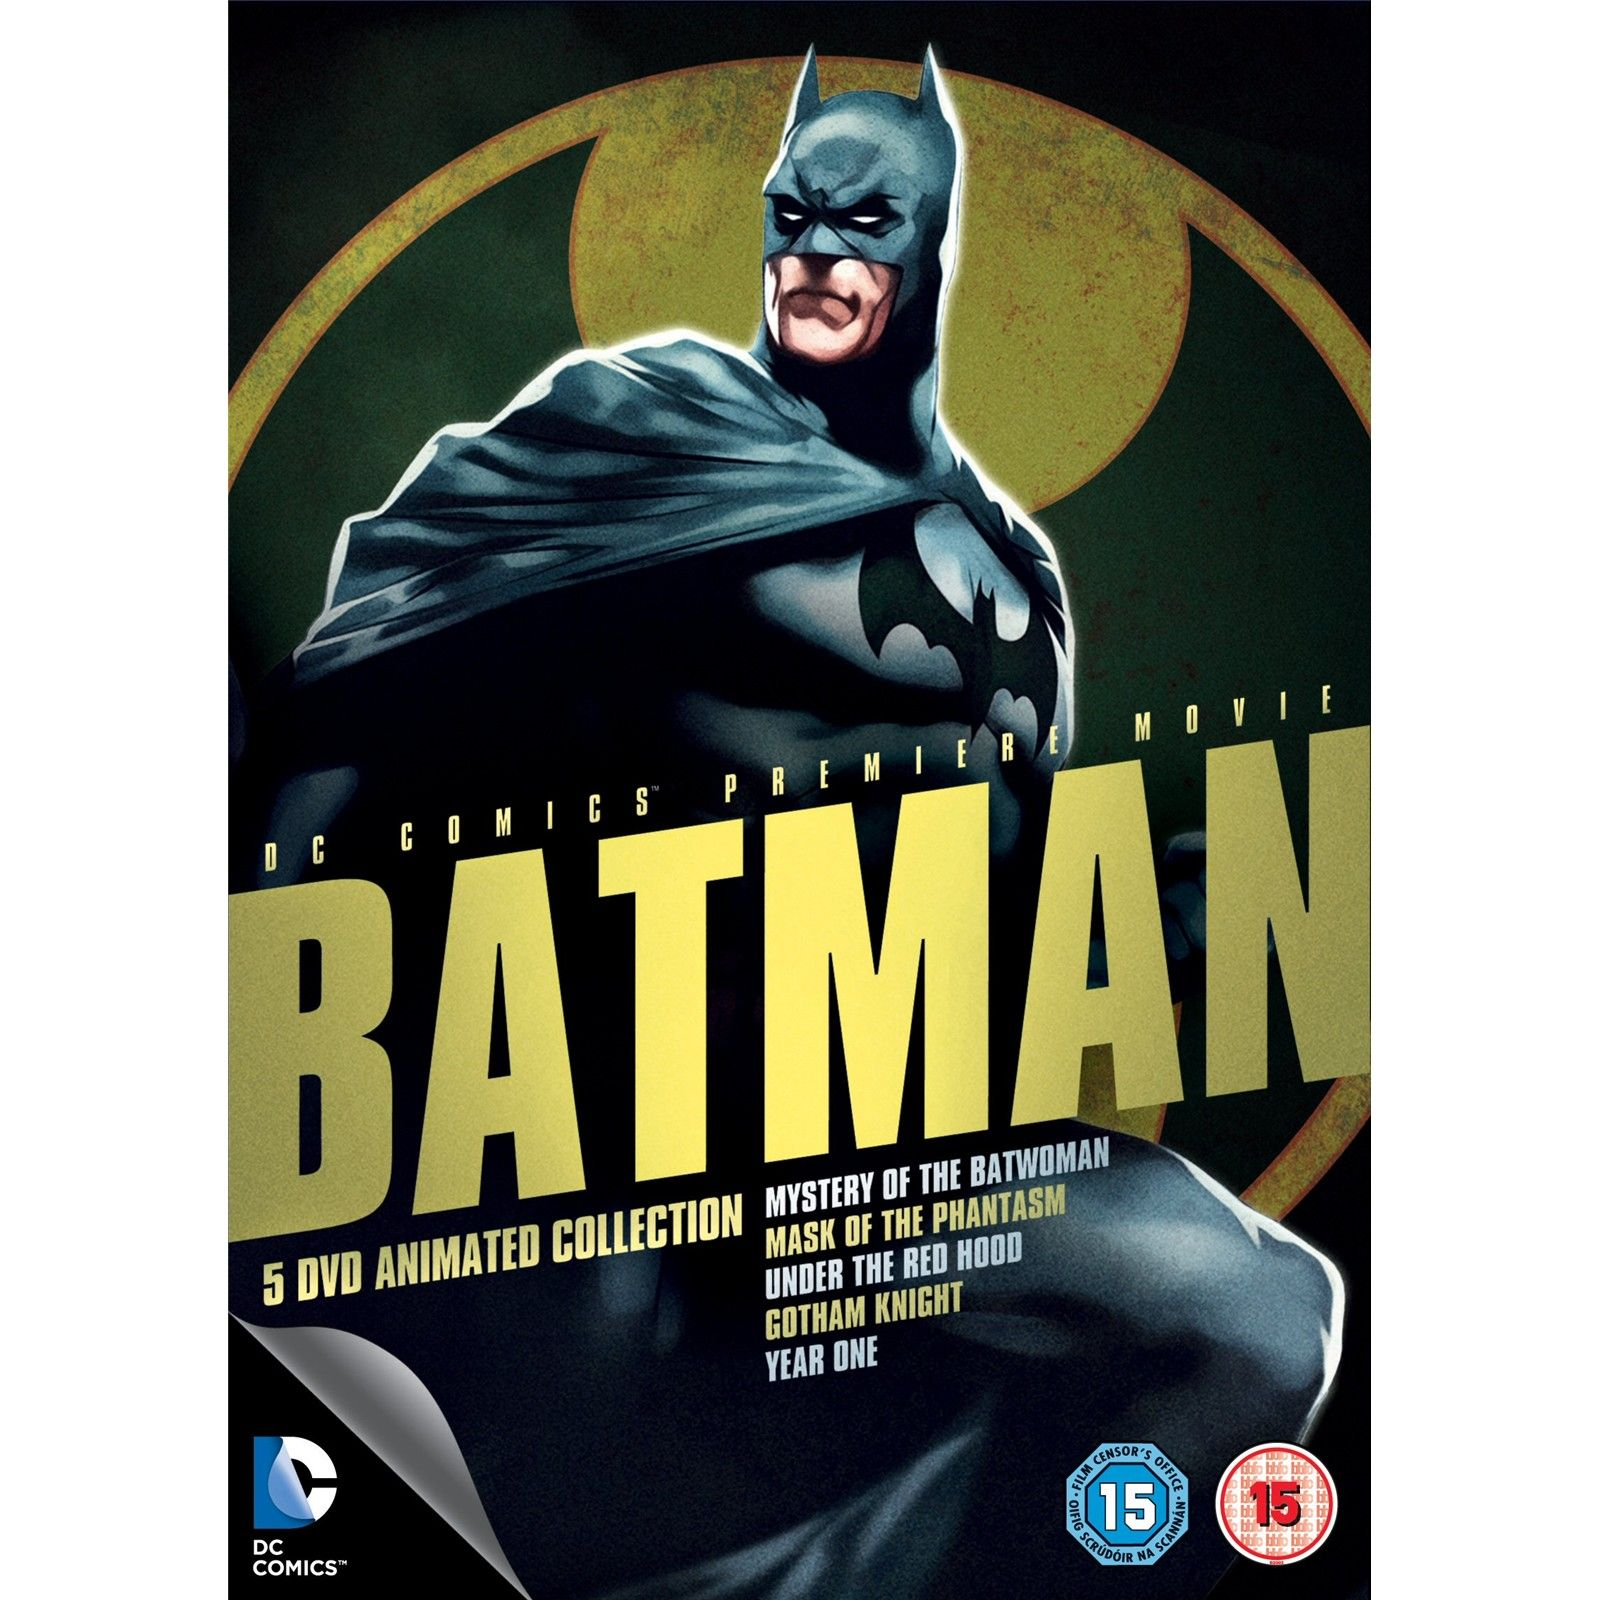 Batman 5 DVD Animated Collection 5 animated films for